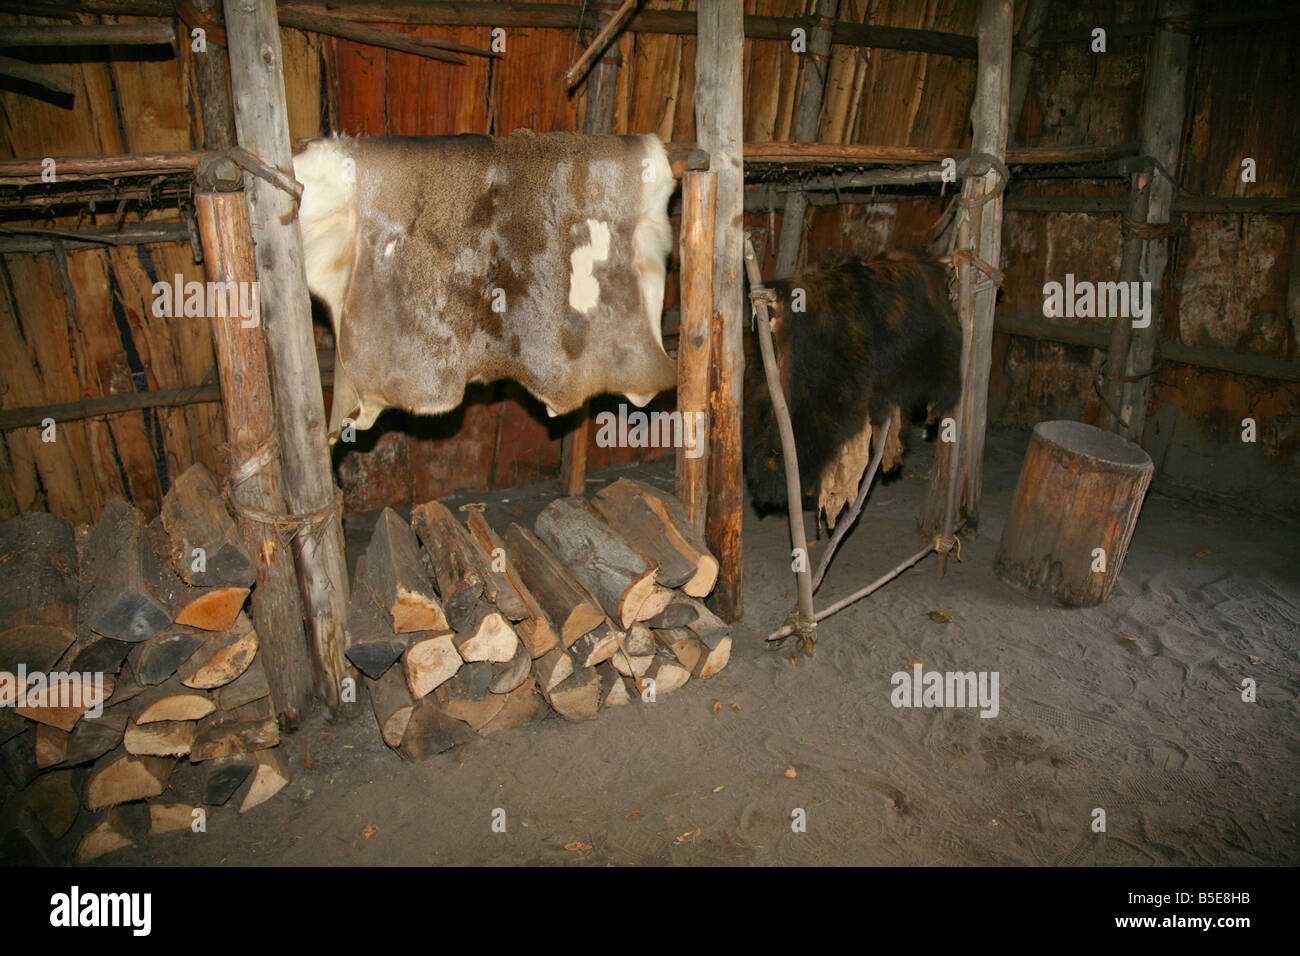 Indian Trappers Furs hung inside the Huron Long-house for curing at the authentic Huron Indian Village in Midland - Stock Image